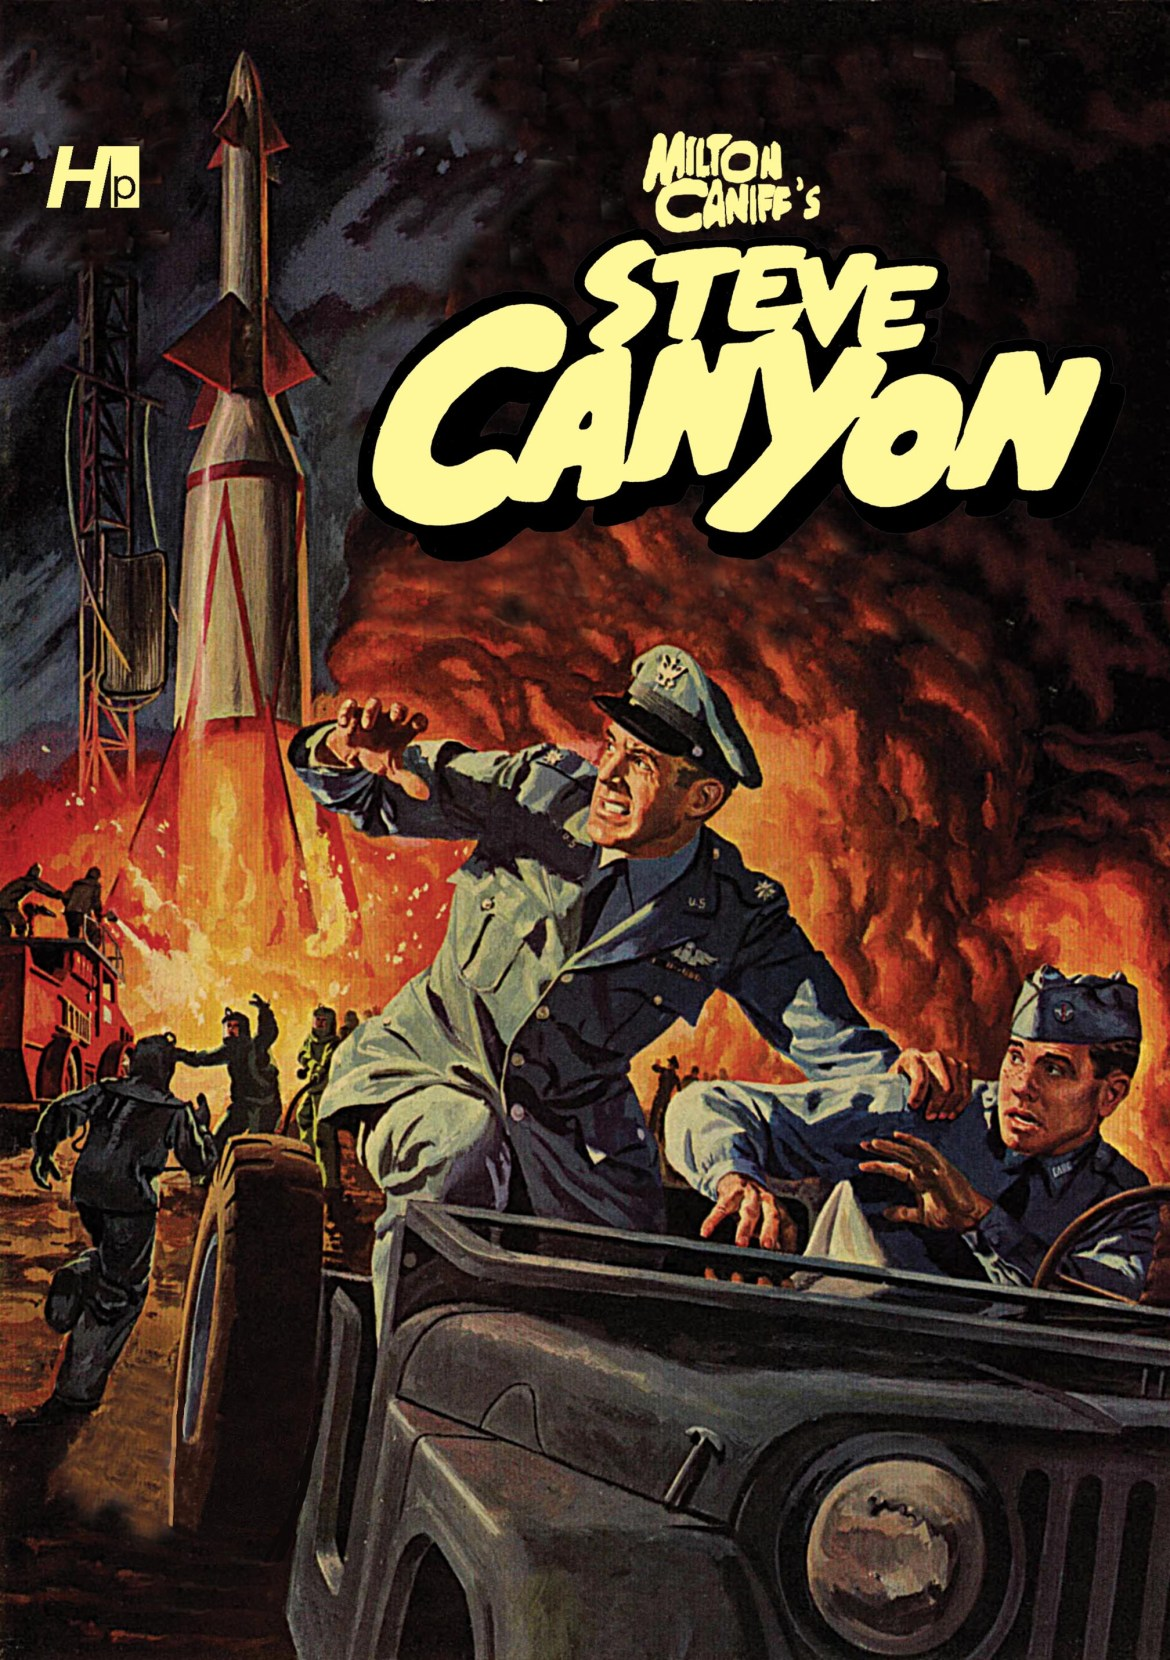 SteveCanyonpromocoversmall Steve Canyon added to the Hermes Press line-up